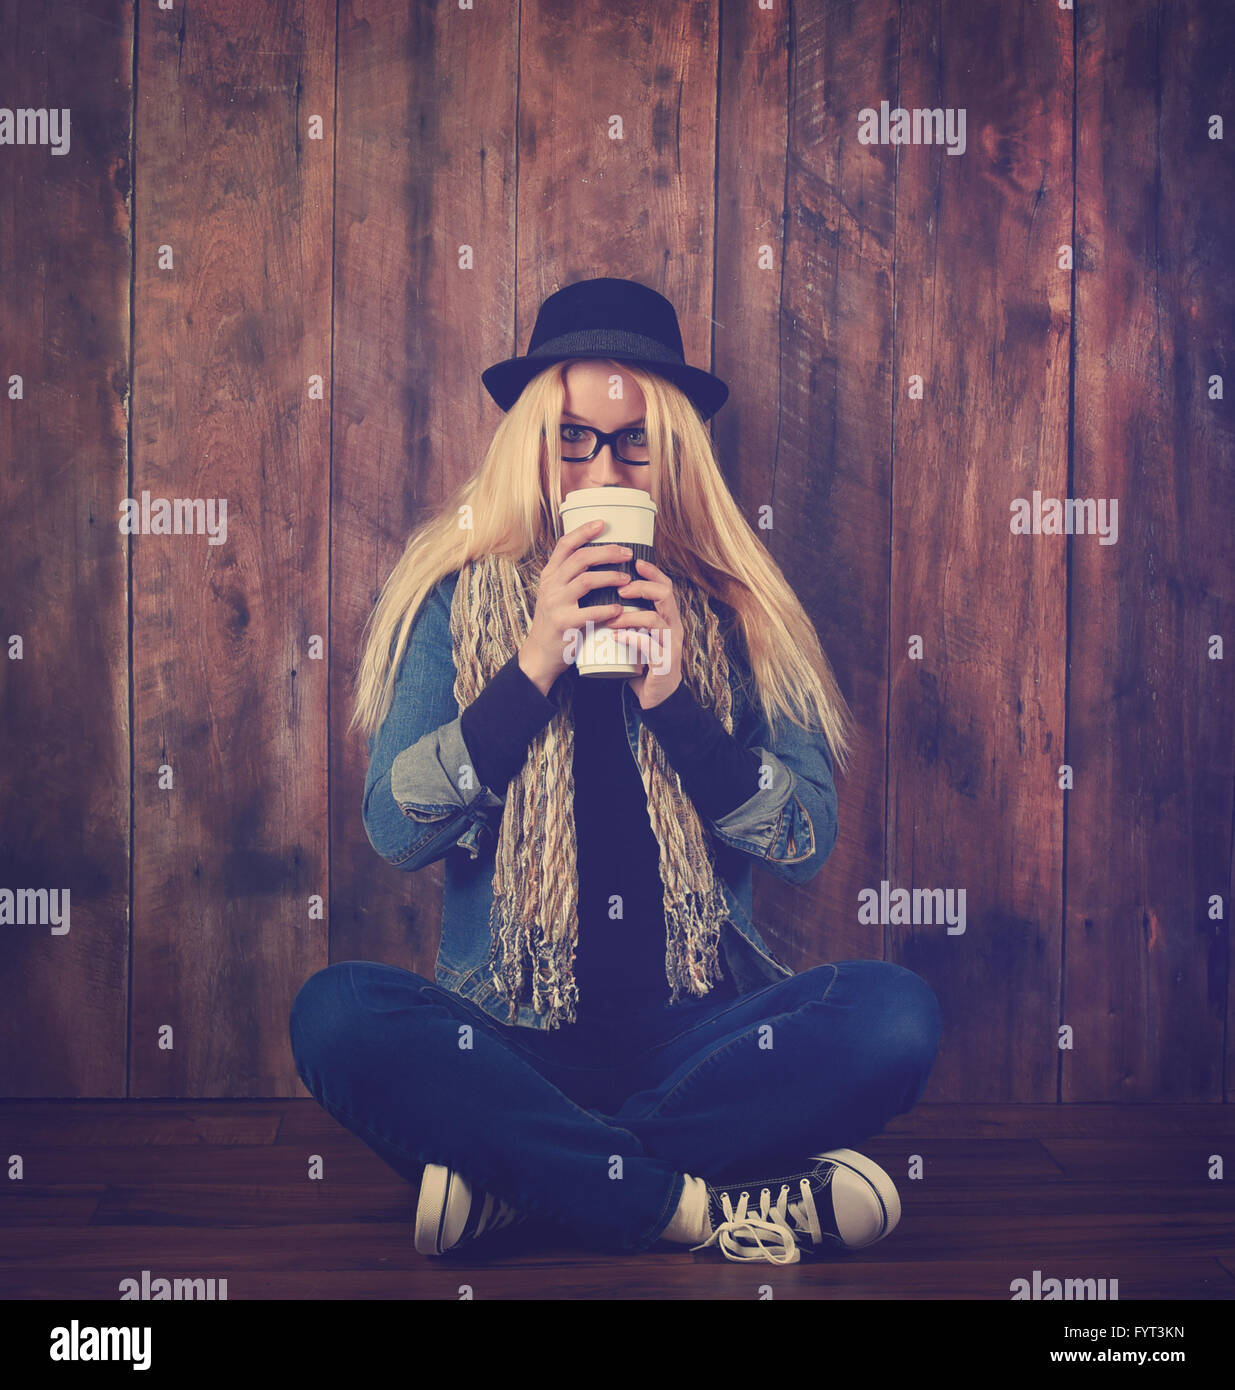 A young hipster woman is drinking a coffee drink against a wood background. She has glasses and a hat on. - Stock Image